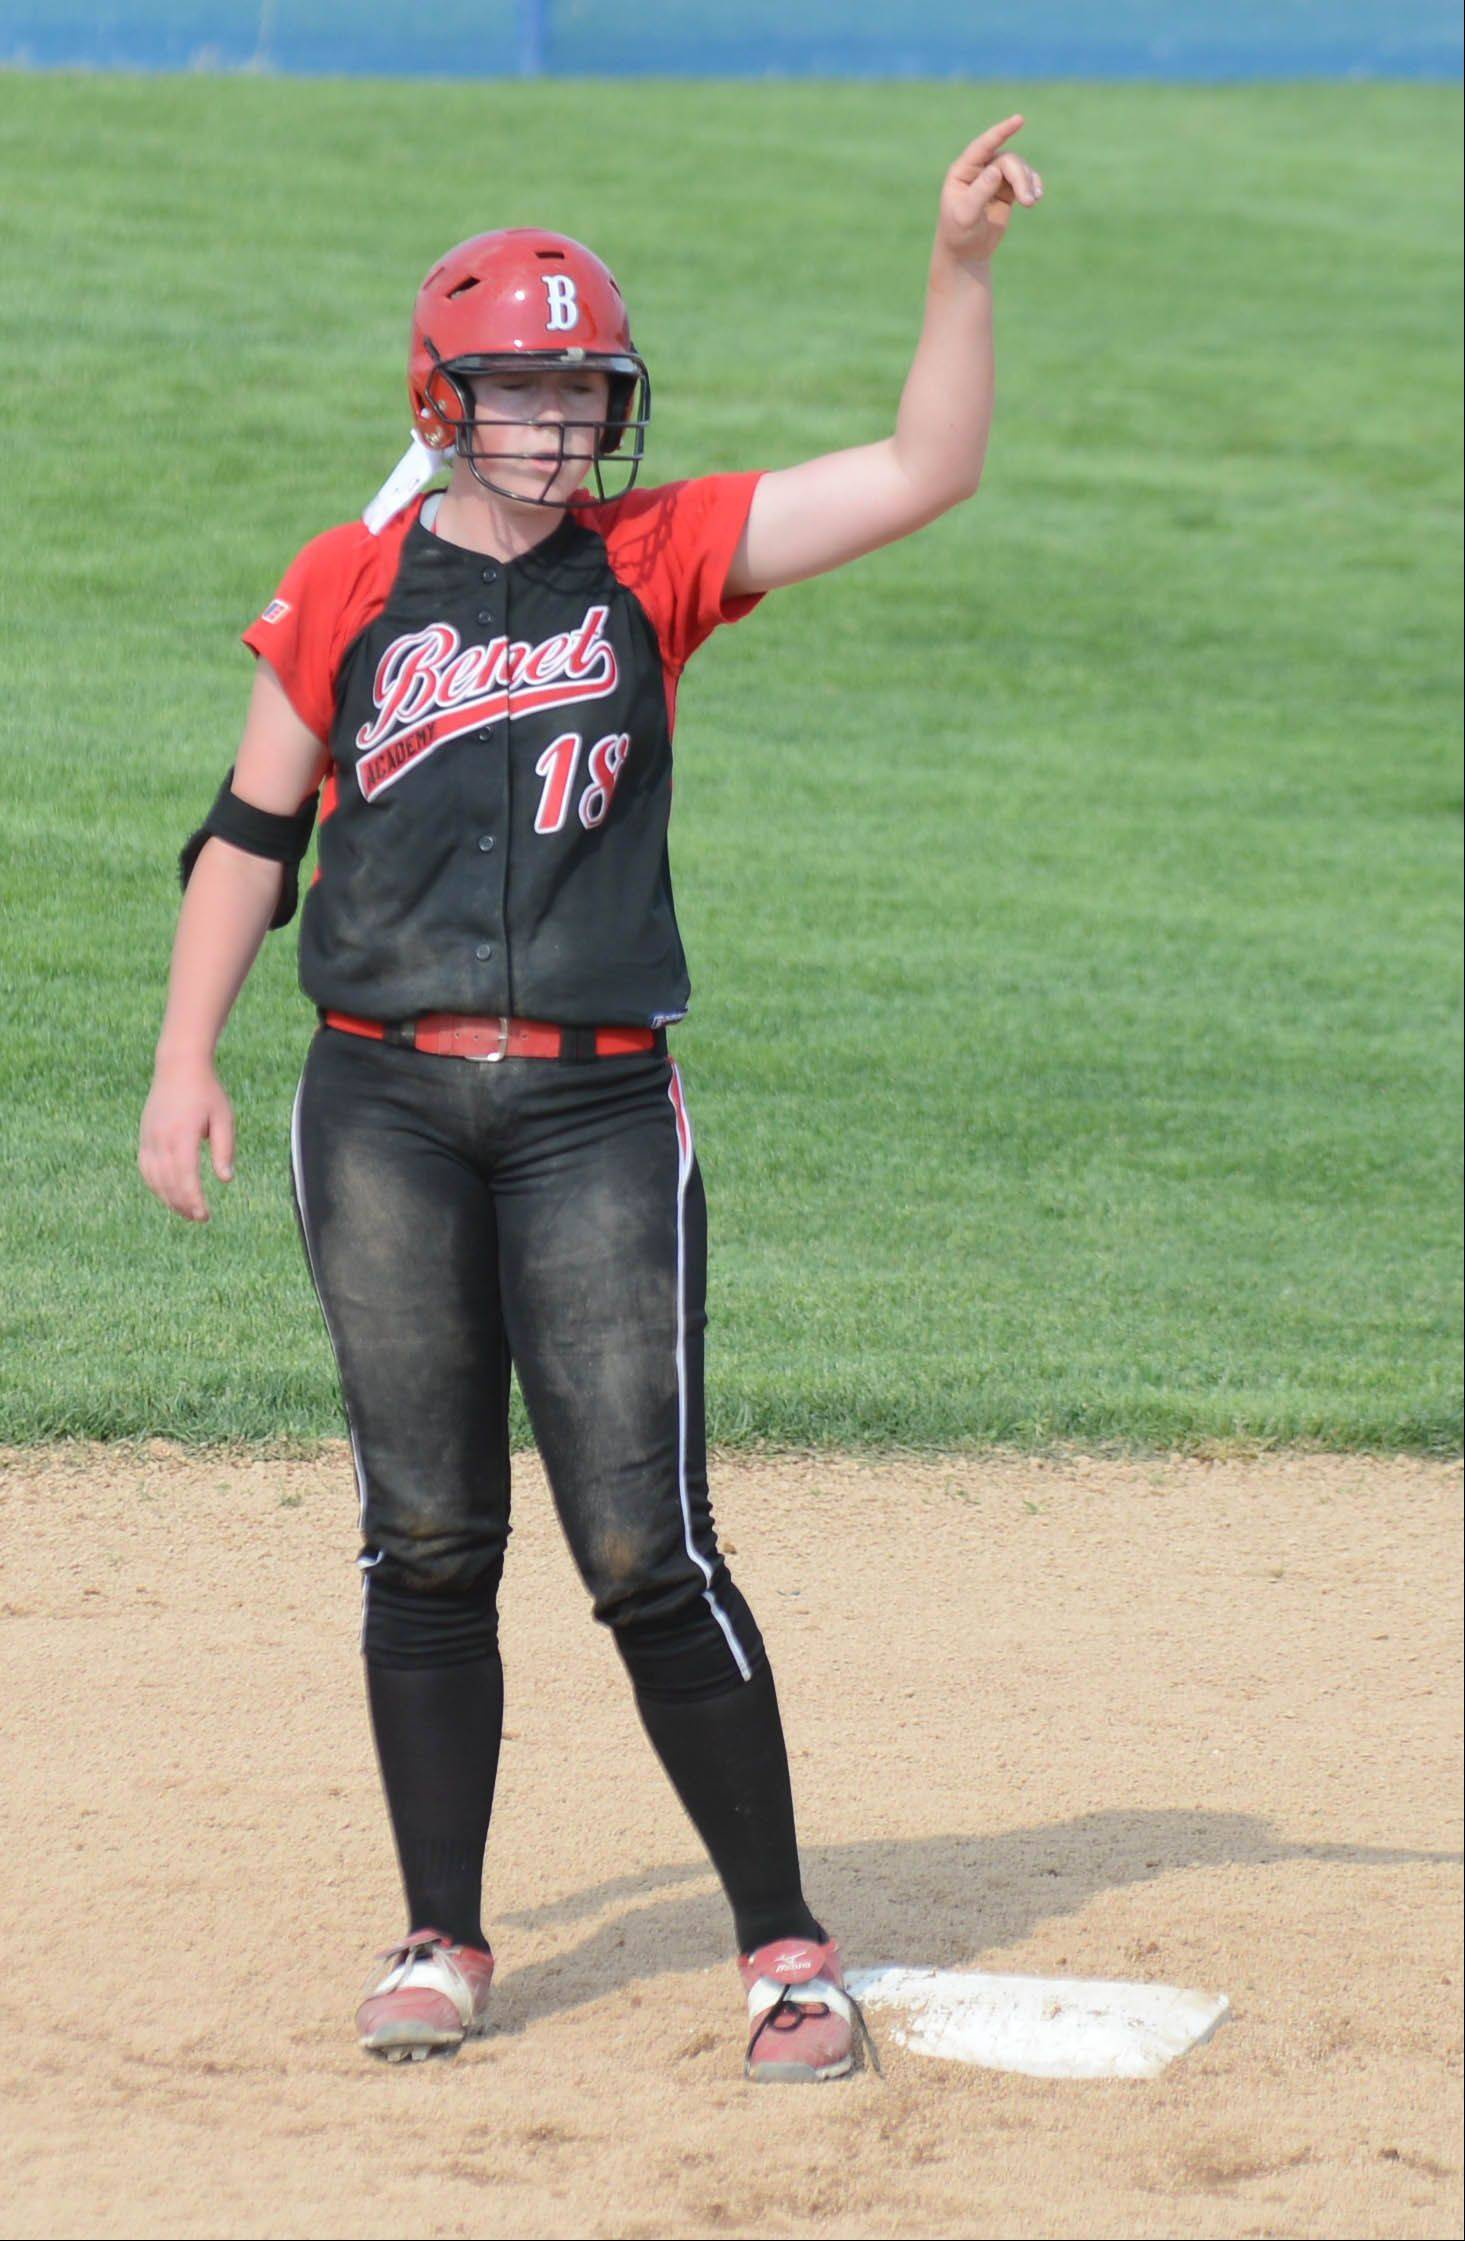 Maeve McGuire of Benet on second during the Class 4A Neuqua Valley sectional semifinals softball game Wednesday.